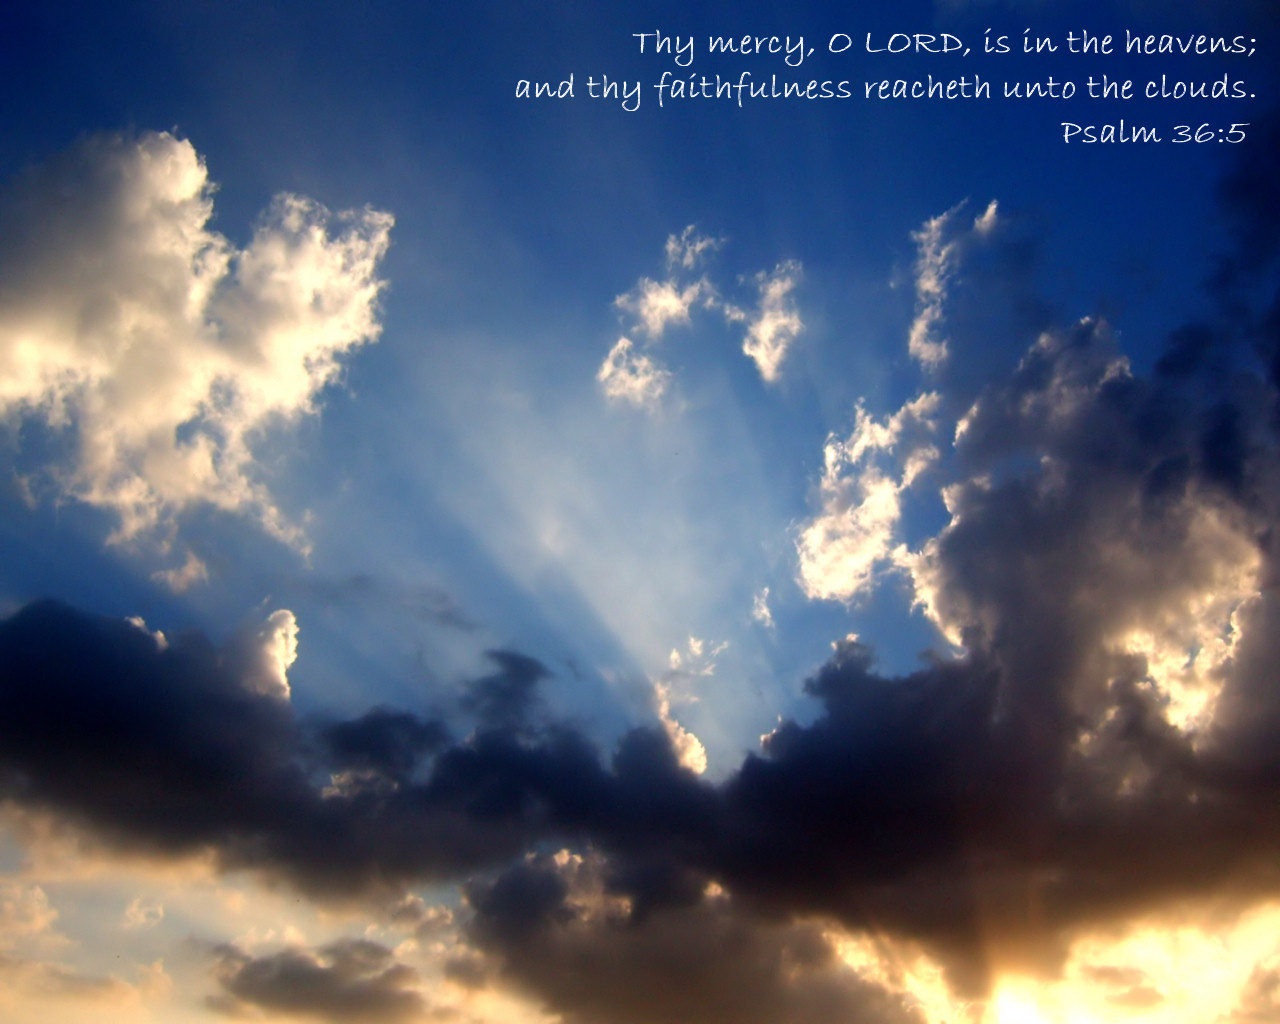 Inspirational Psalm Bible Verses Wallpapers 1280x1024